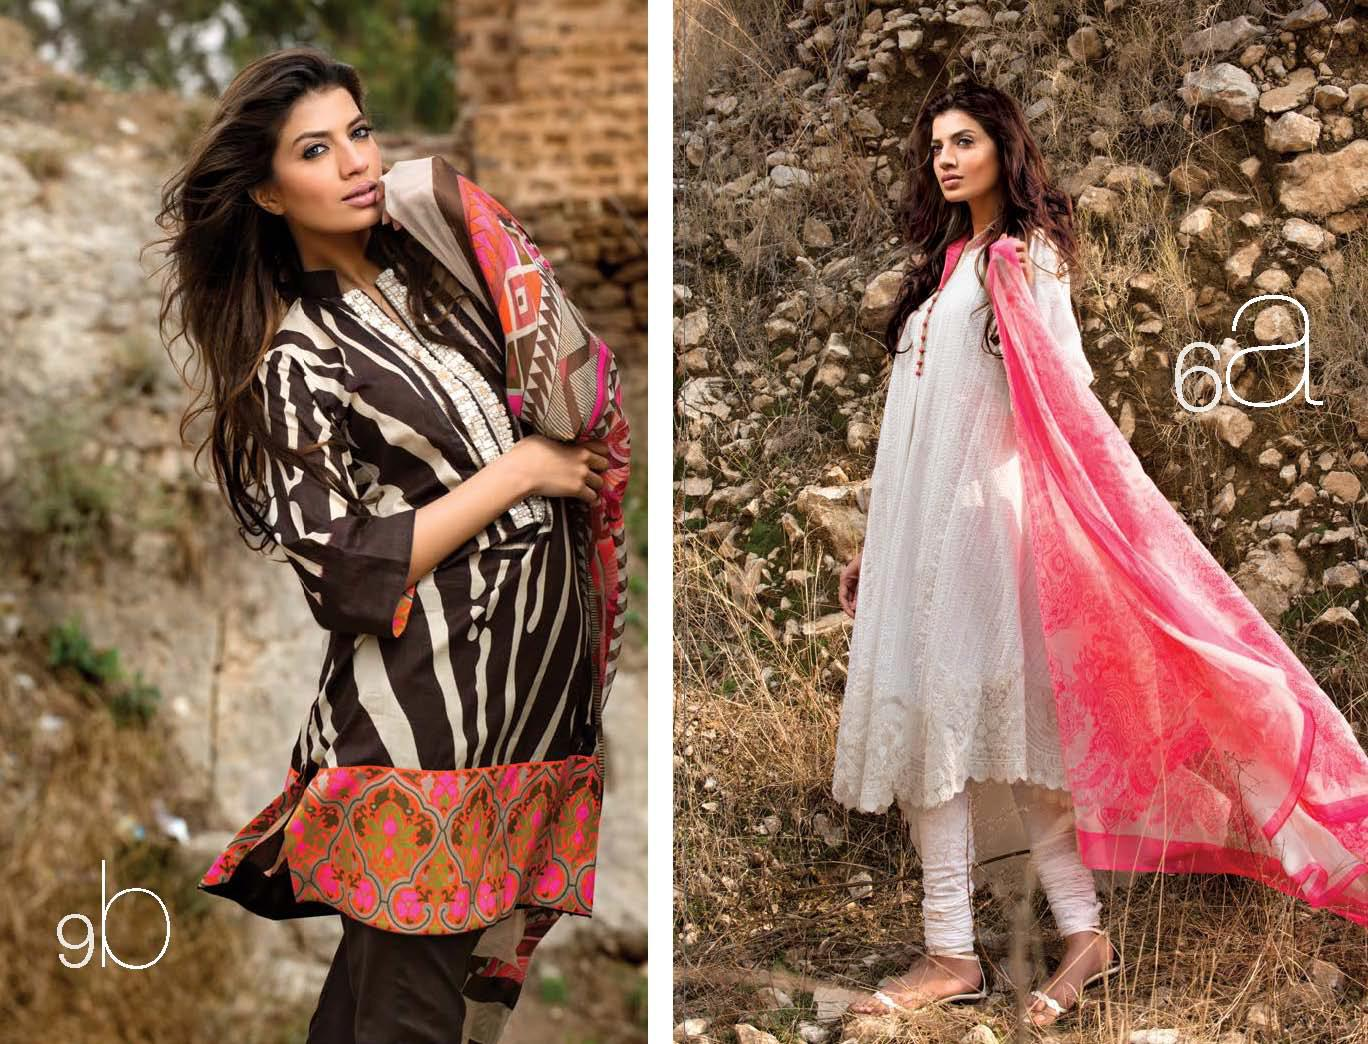 SanaSafinazLawnCollection2013 2014wwwShe9blogspotcom252852529 - Sana Safinaz Lawn Collection 2013